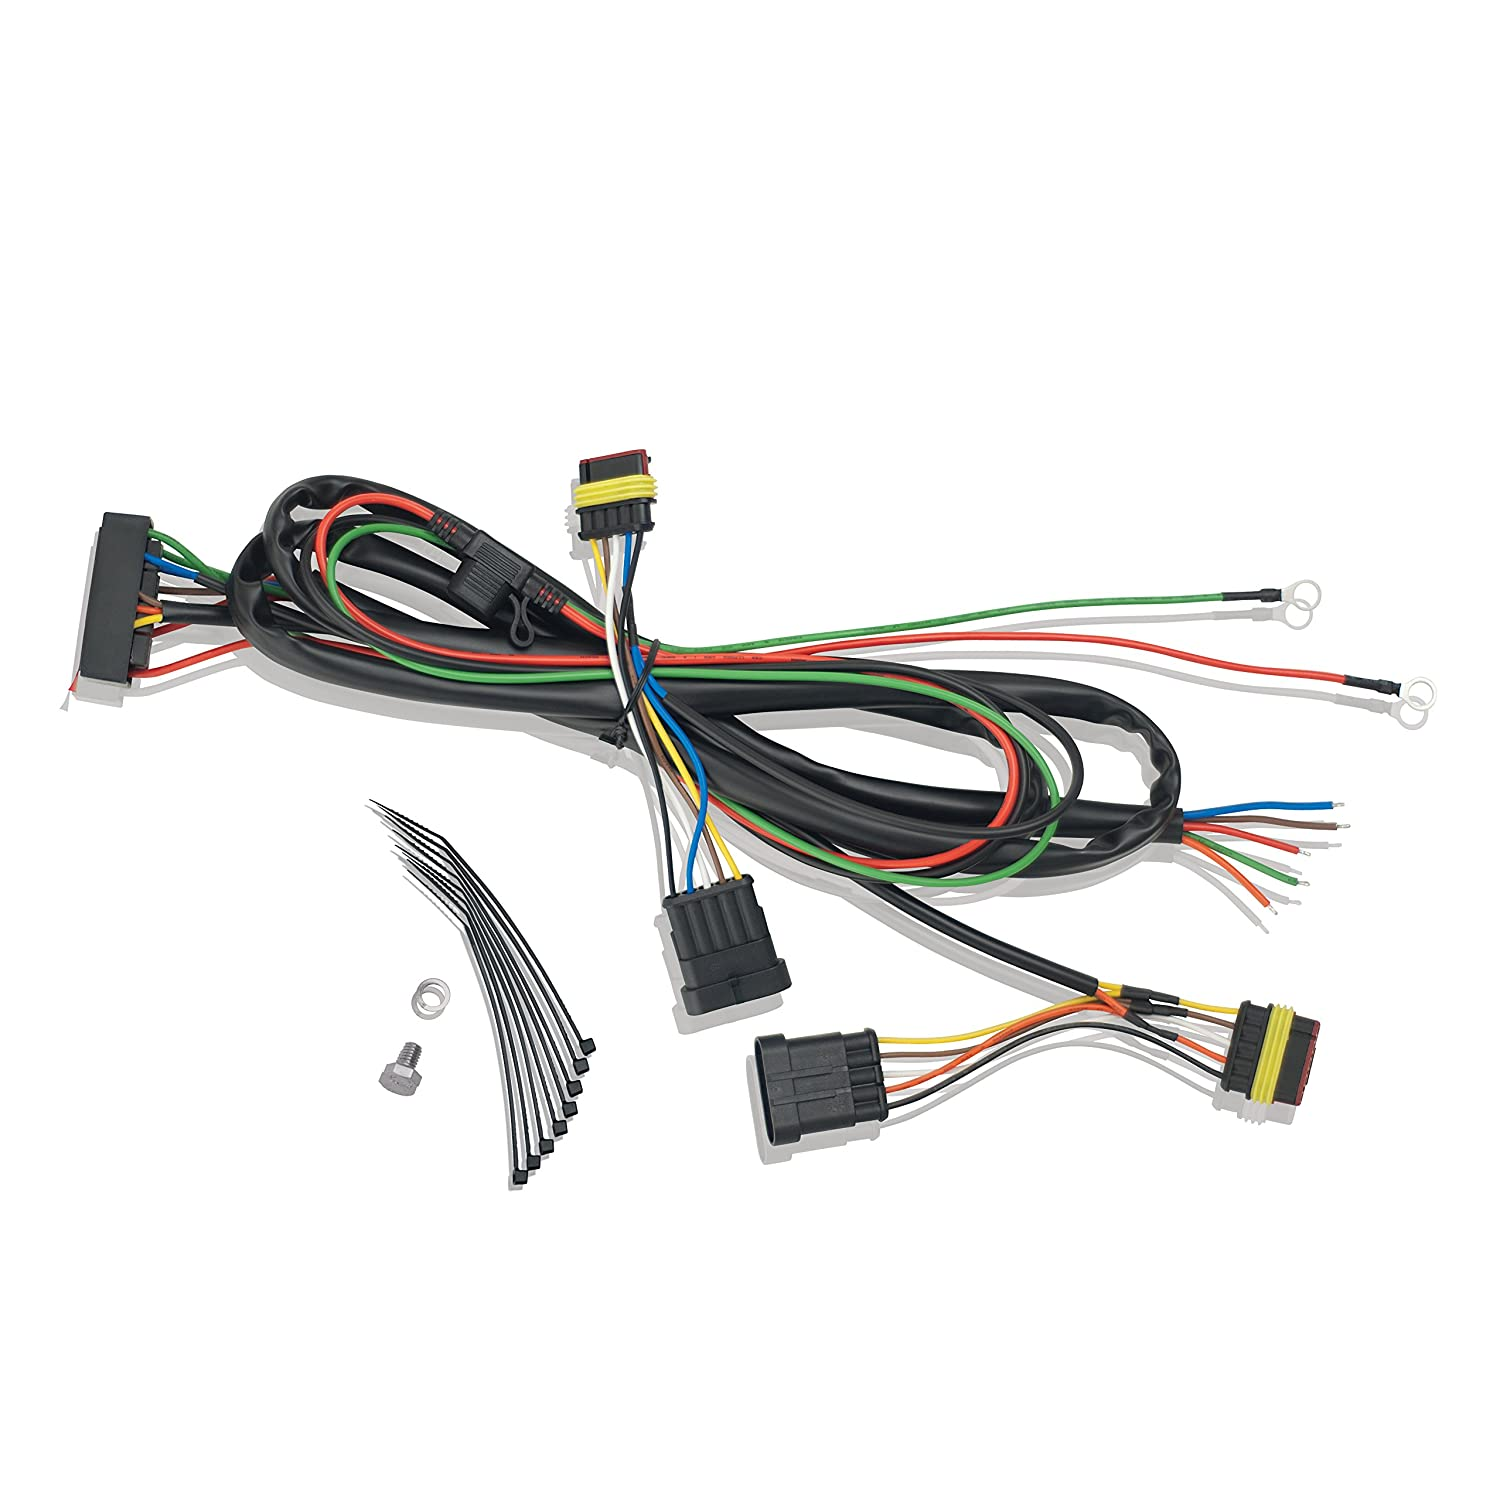 81dZHpG1lCL._SL1500_ amazon com show chrome accessories 41 162 trailer wire harness